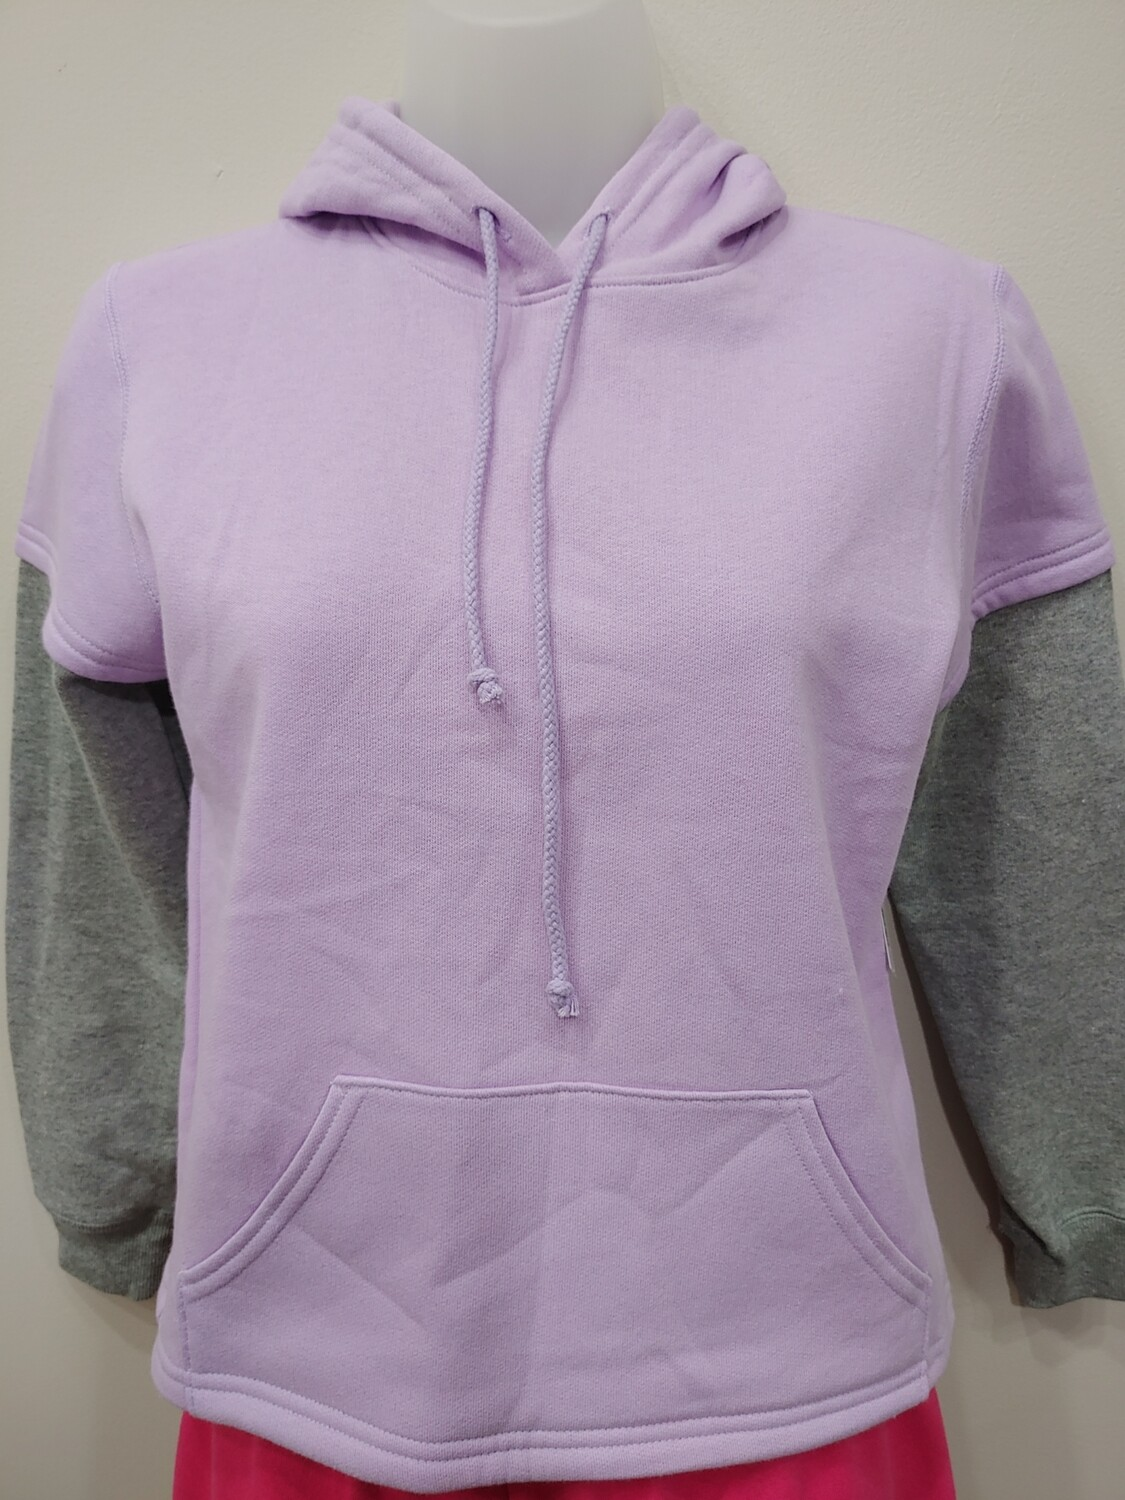 Purple & Grey Rag Doll Sweatshirt